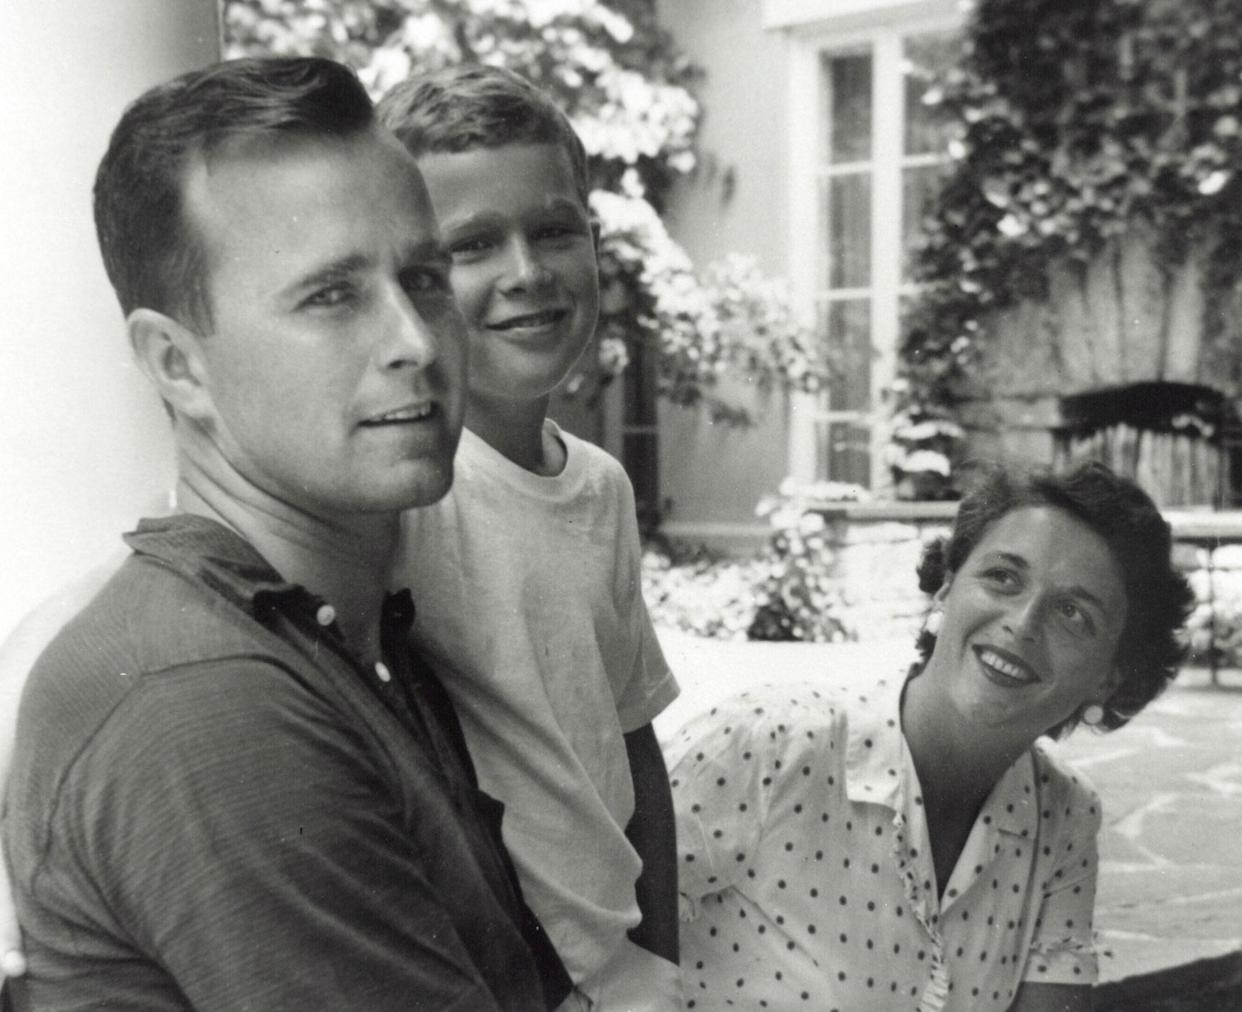 Future presidents George H.W. Bush and George W. Bush pose with Barbara Bush in Rye, N.Y., summer 1955. (Photo: Newsmakers/Getty Images)